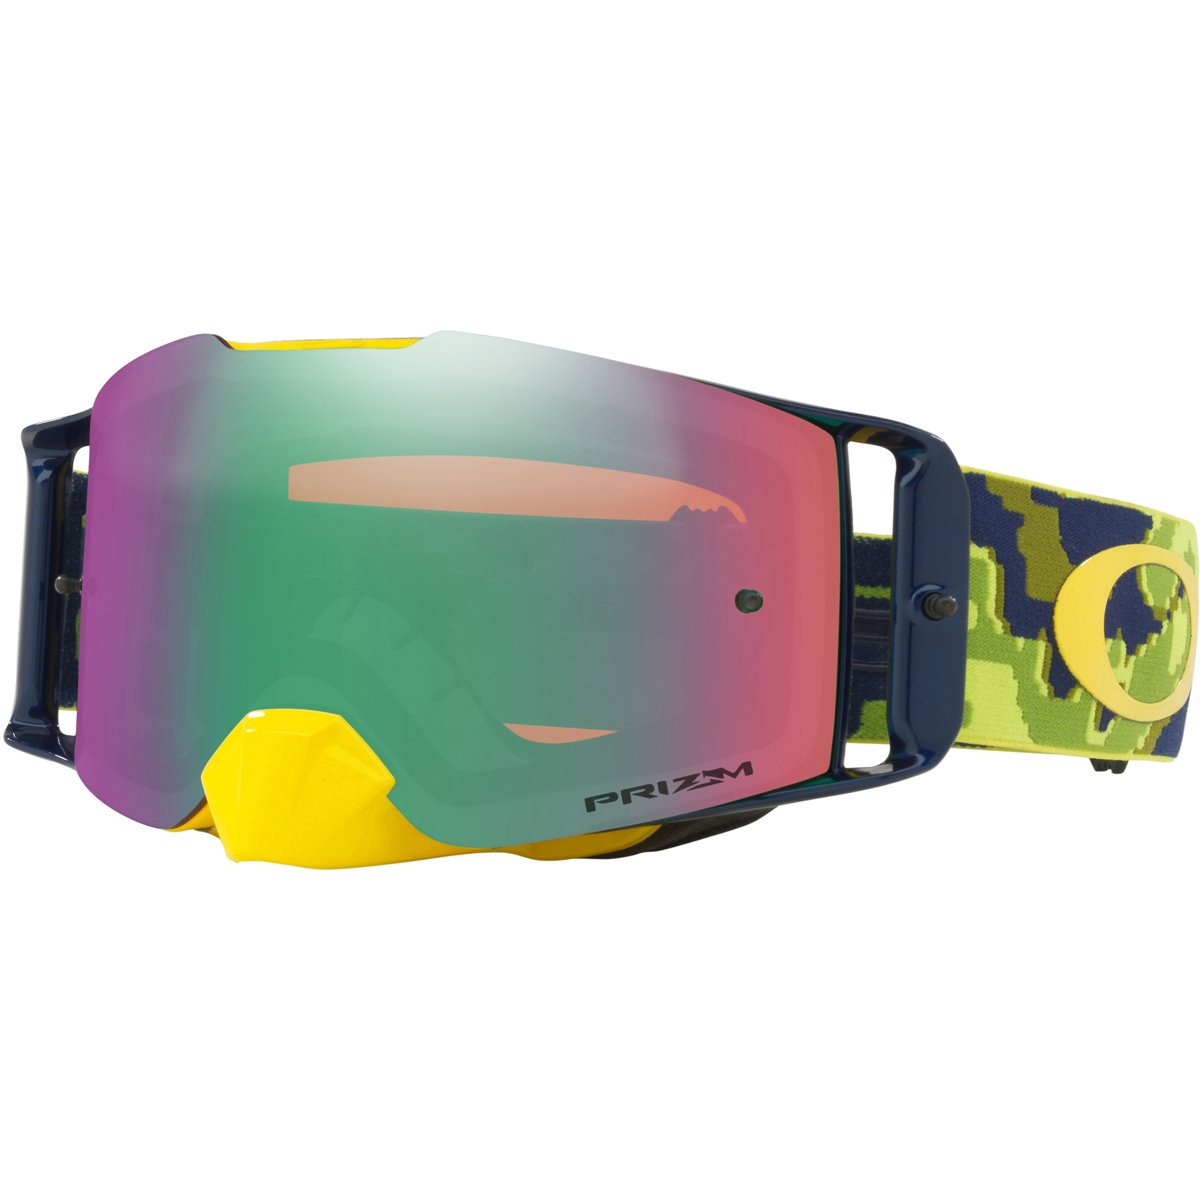 Oakley FL MX ThermoCamo GrnYel with Prizm MX Jade unisex-adult Goggles (Green, Large), 1 Pack